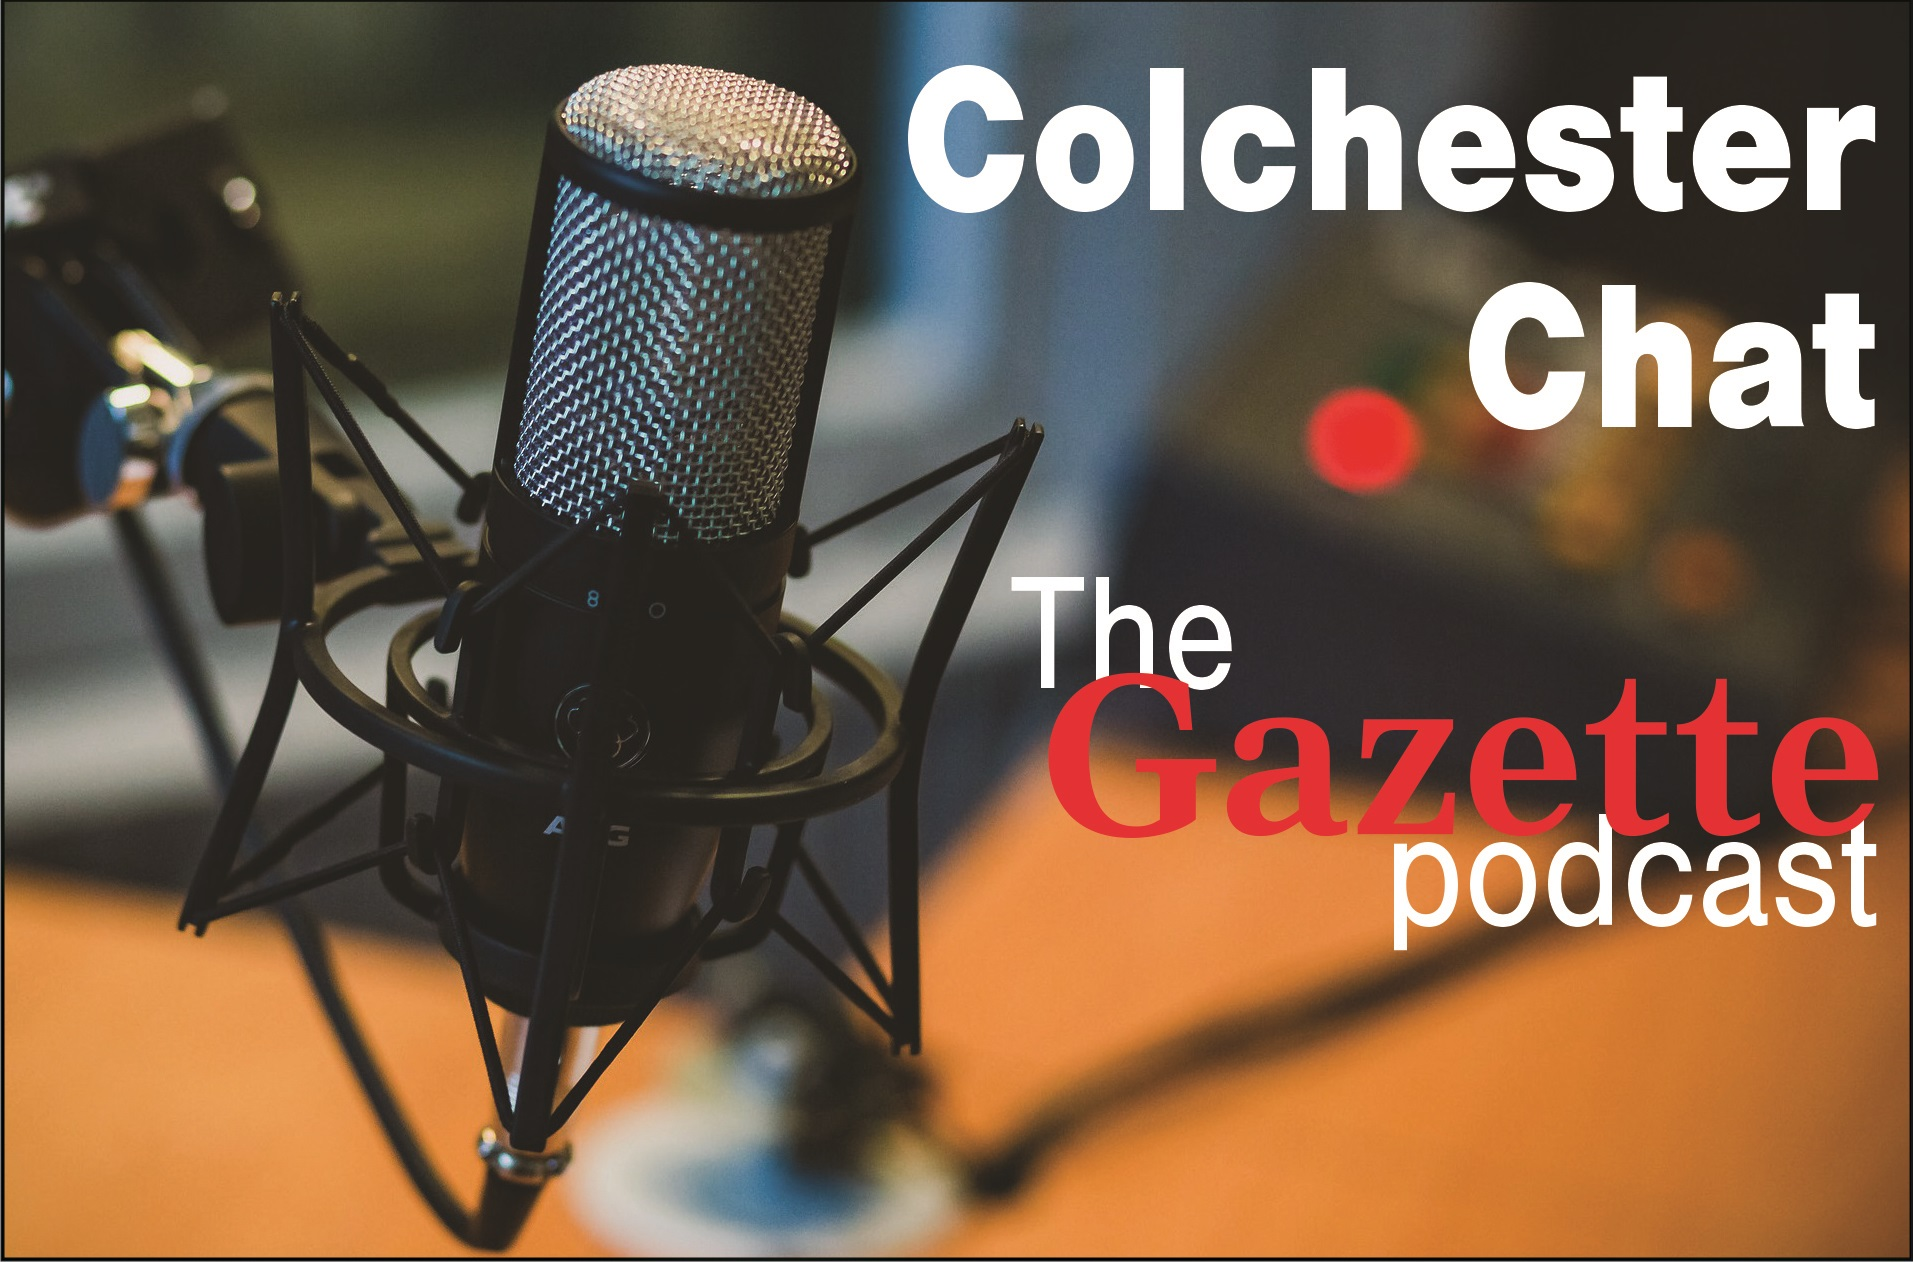 Colchester Chat - the Gazette podcast